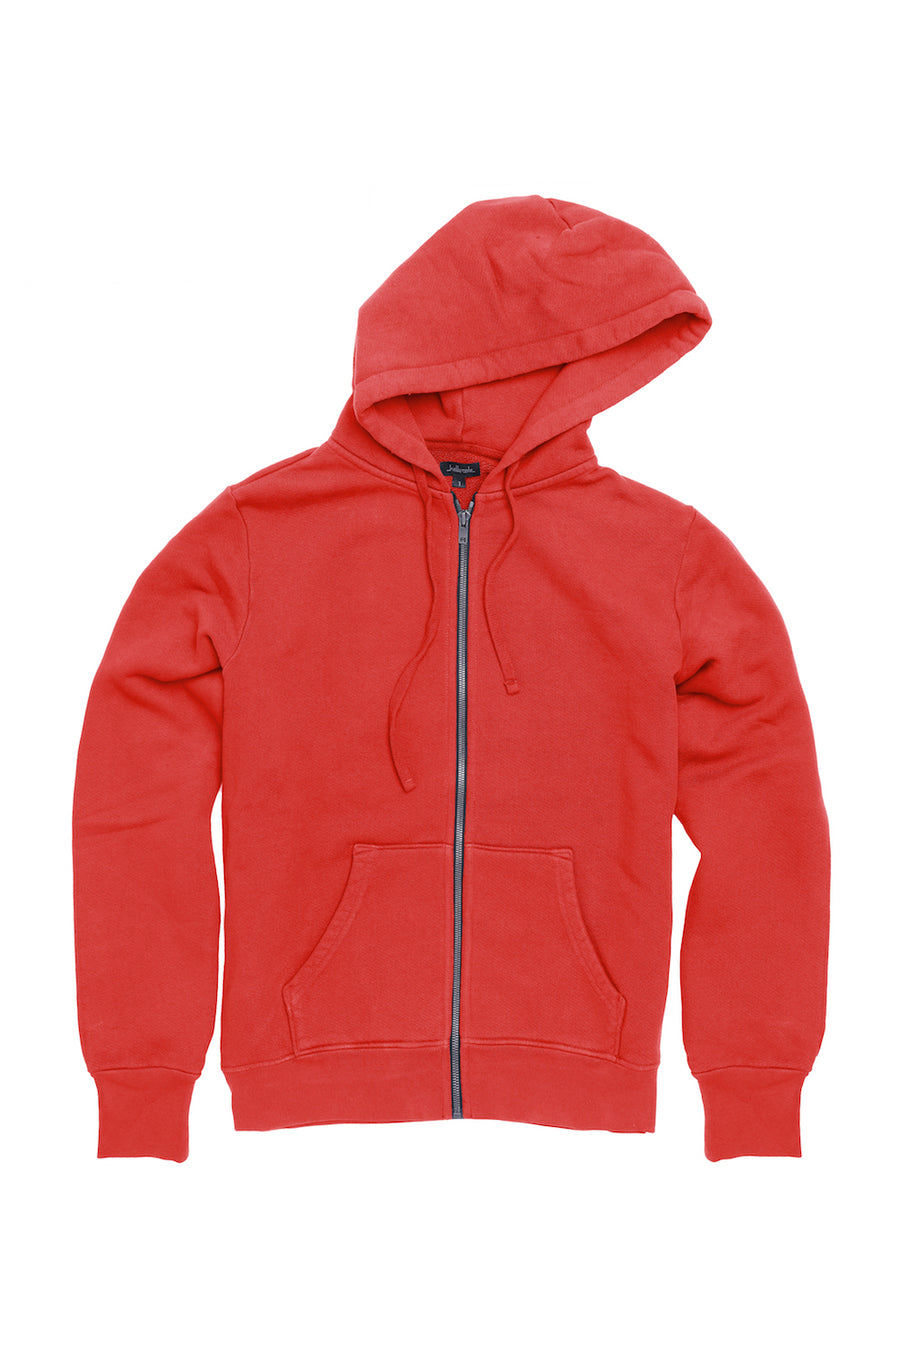 Fitted French Terry Hooded Sweatshirt - Brick